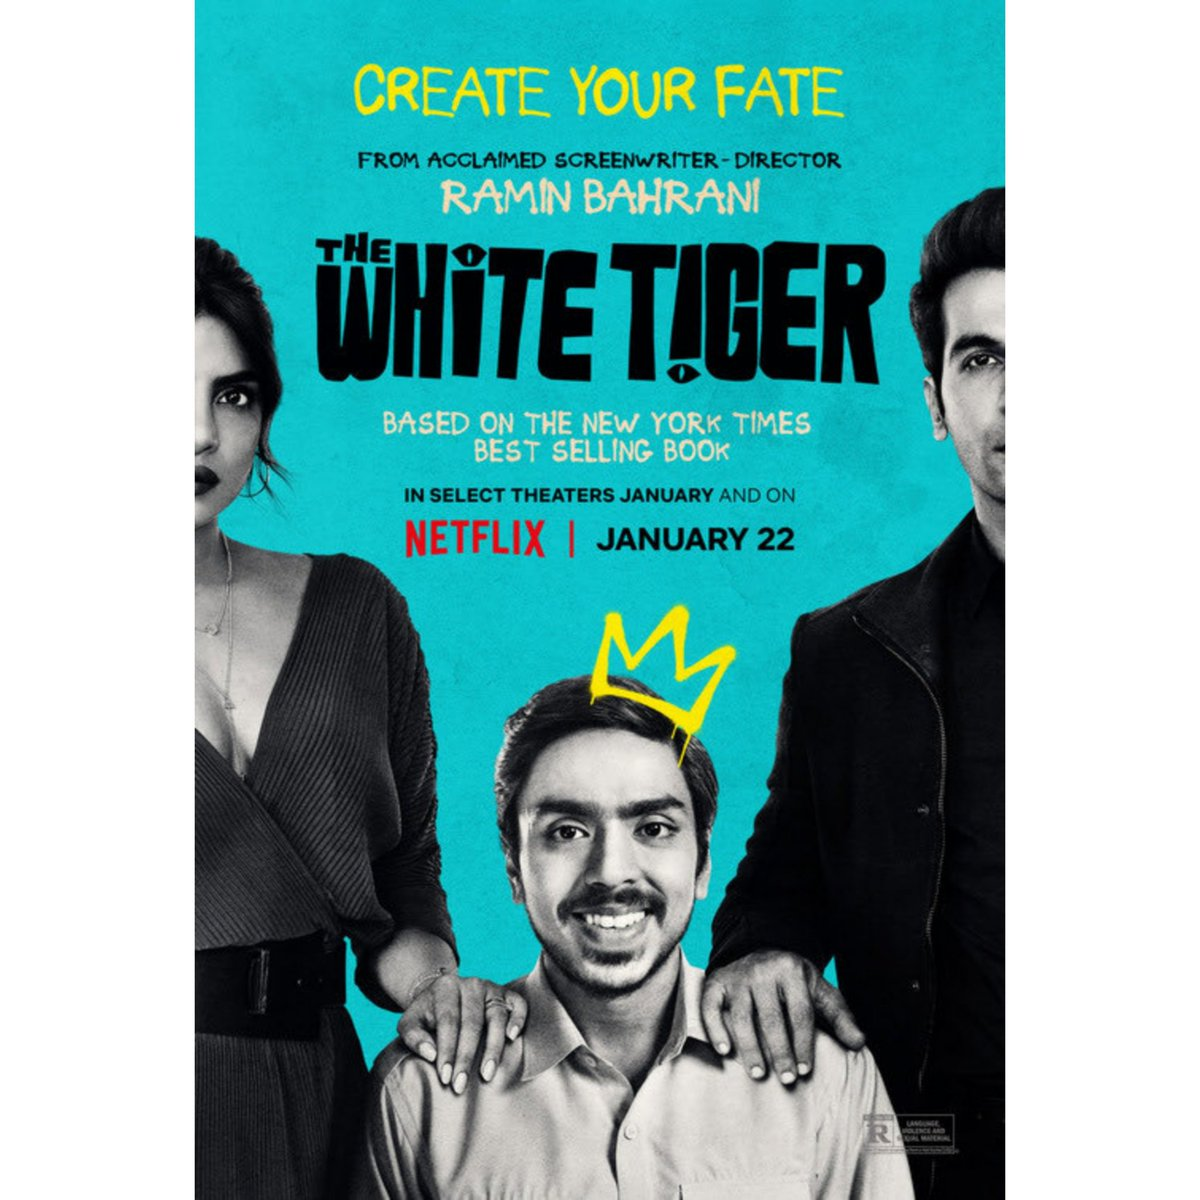 #TheWhiteTiger (Hindi) : Ideology Between Rich And Poor ! Soild Story Telling From Director Ramin Bahrani  'Adarsh Gourav' The New Star Of The Week He Dominated Whole Film By His Fascinating Acting Skills  Telugu Audio Also Available  Very Good Watch  Streaming Platform : Netflix